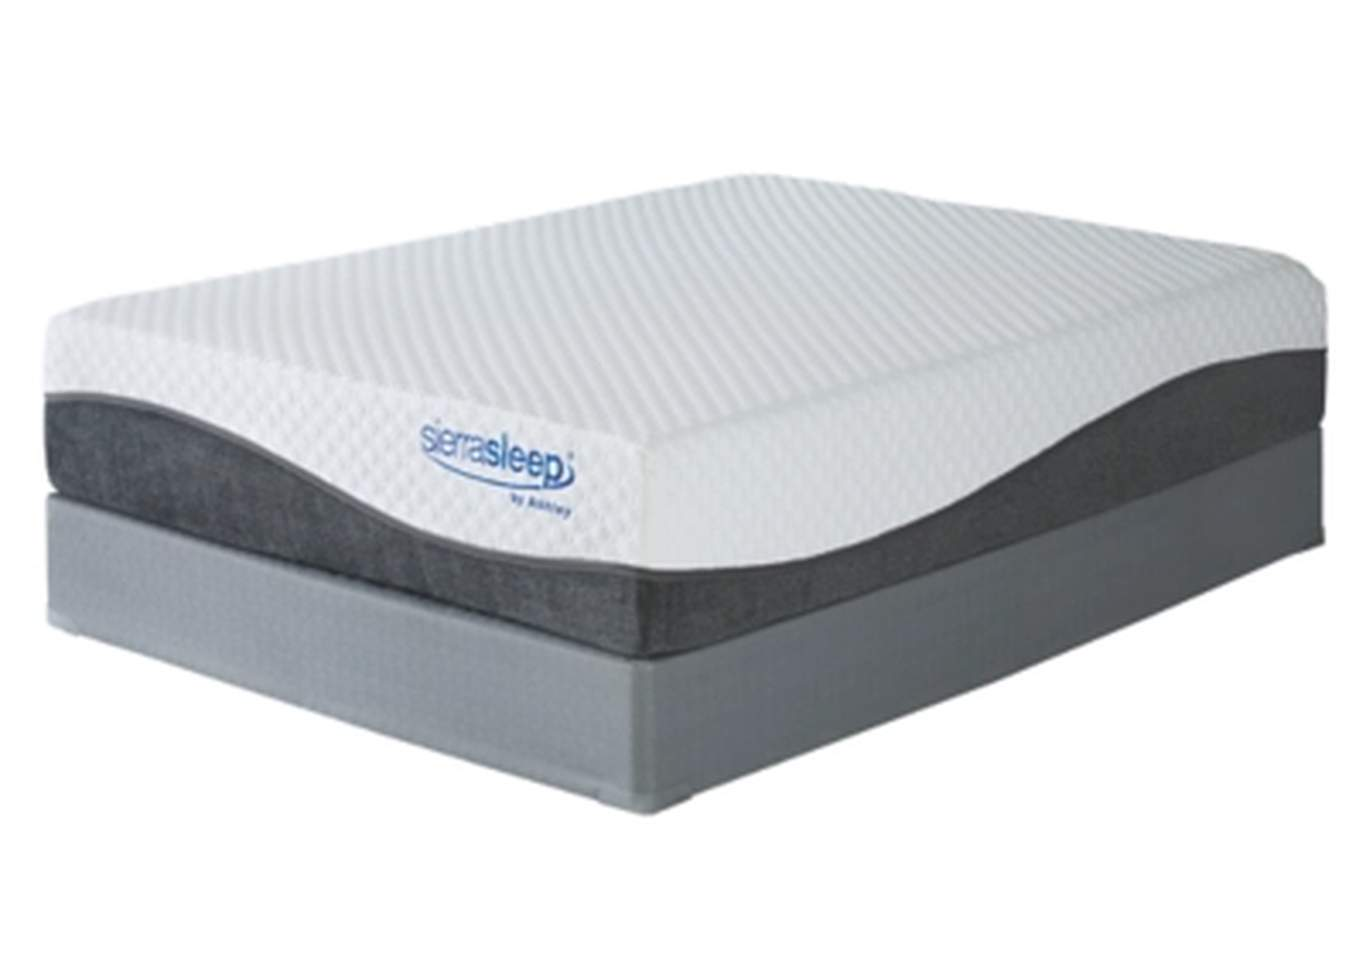 Mygel Hybrid 1300 California King Mattress,Sierra Sleep by Ashley